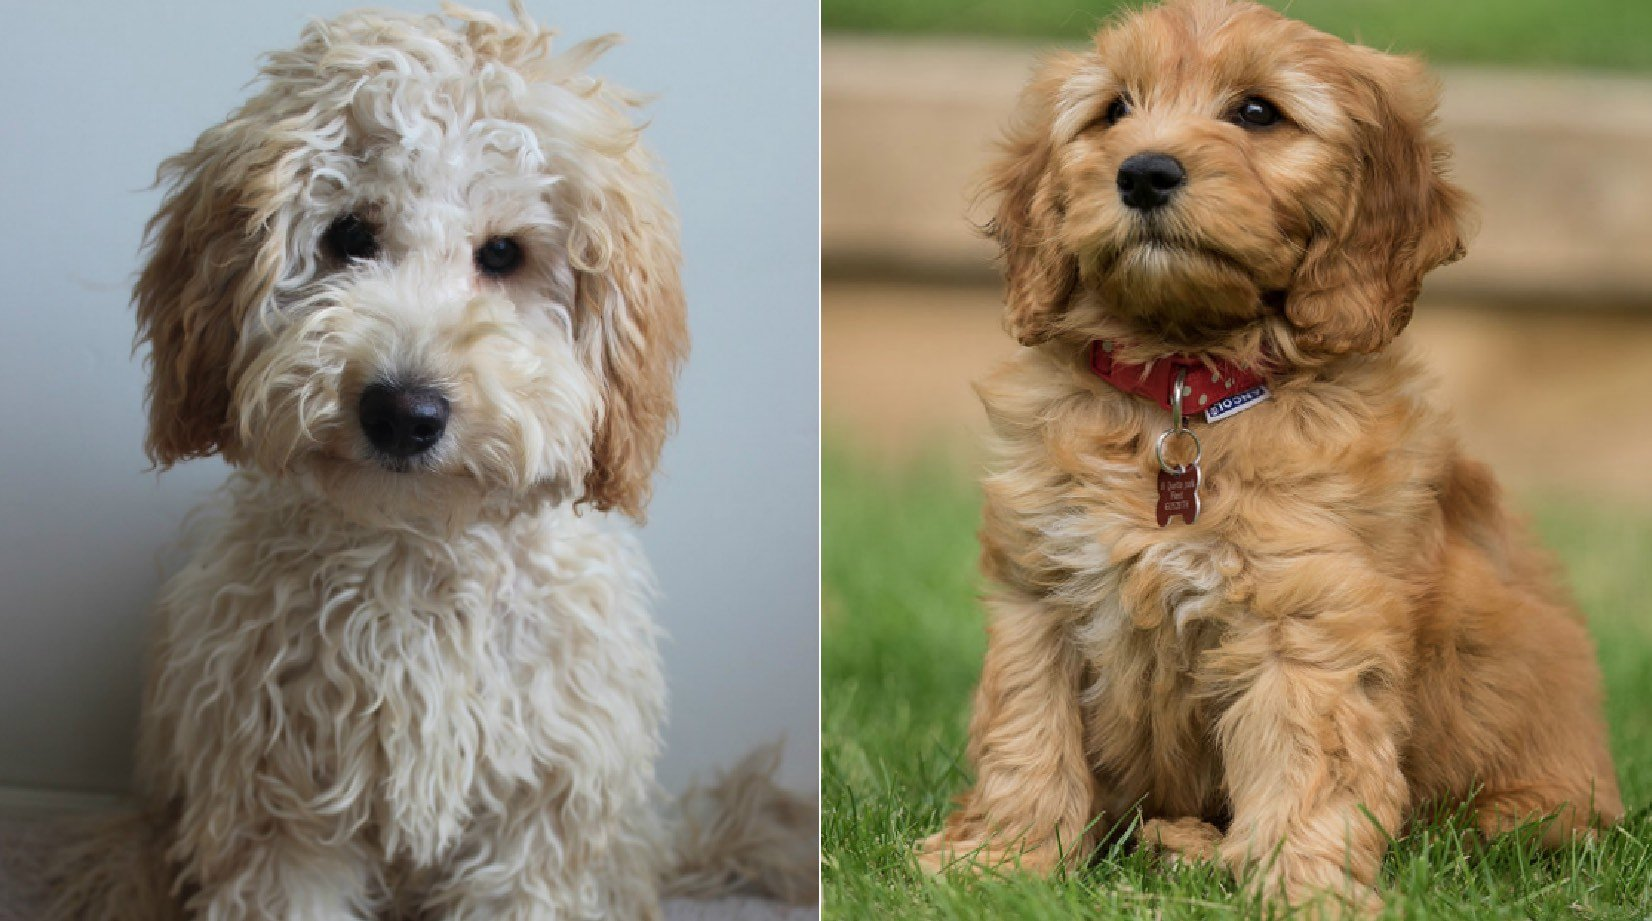 Labradoodle Vs Goldendoodle What Is The Difference The